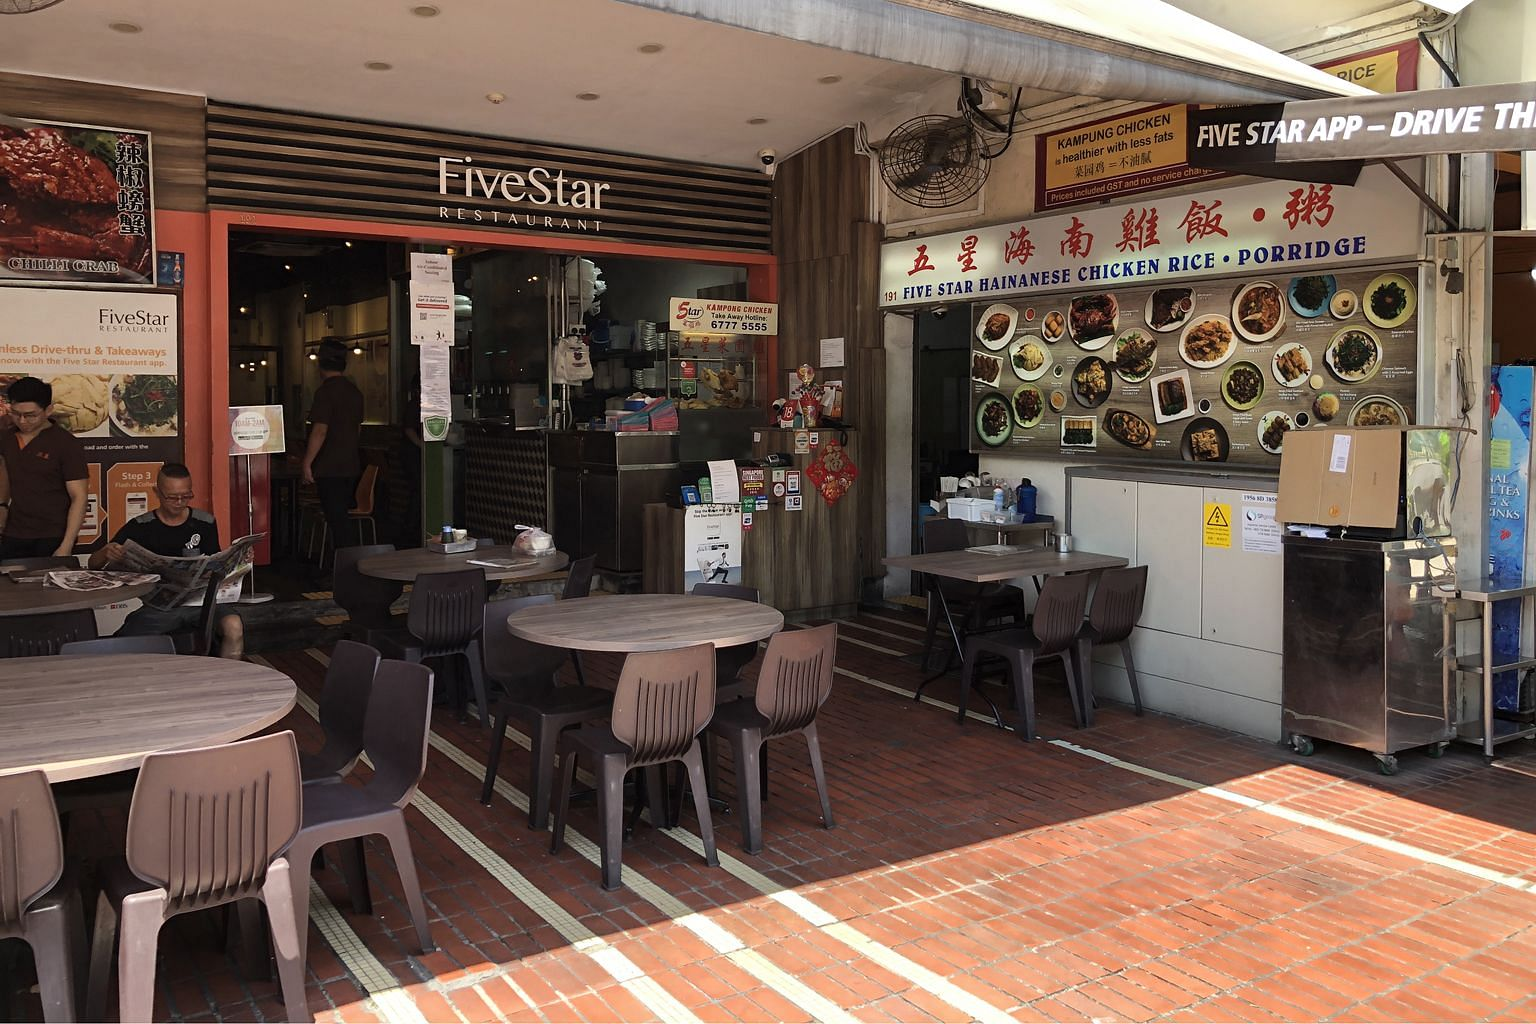 Mr Derek Yeo, a restaurant manager, said he merely wanted to apologise to his late father Yeo Ban Seng and thank him. The elder Mr Yeo, former chairman of Five Star Hainanese Kampung Chicken Rice Restaurants, died on Feb 15. The chain has three outlets, i